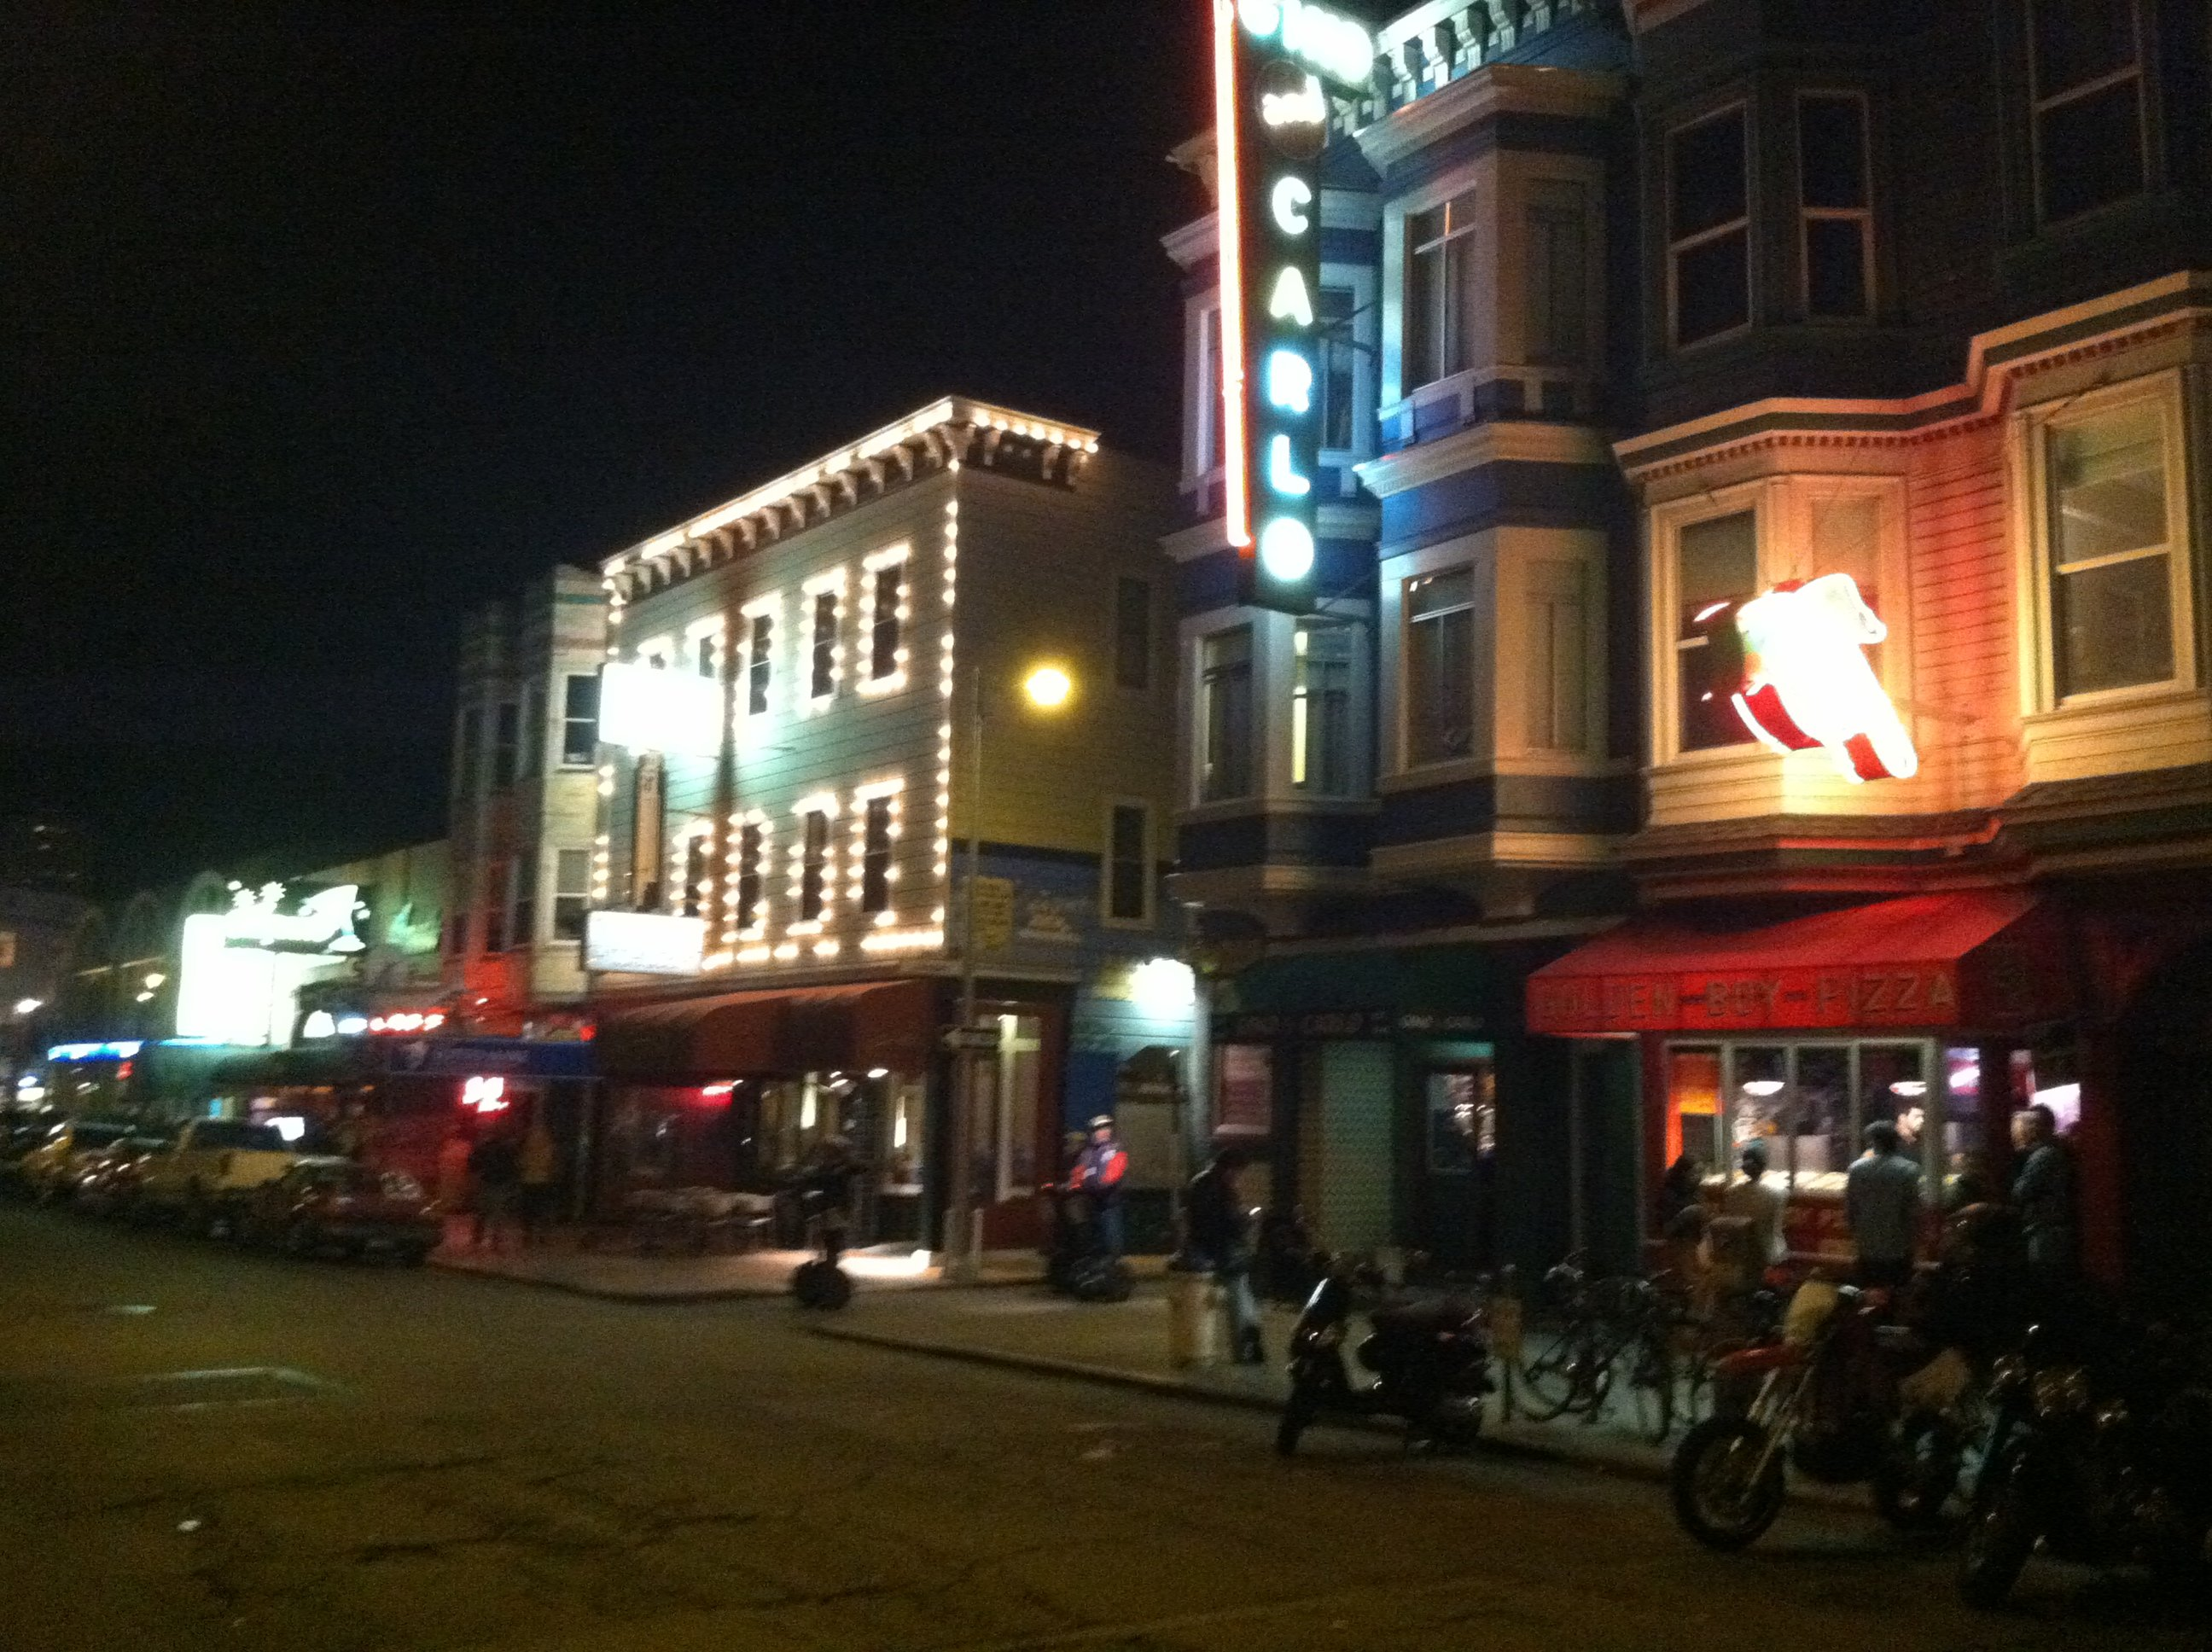 North Beach, Little Italy at night